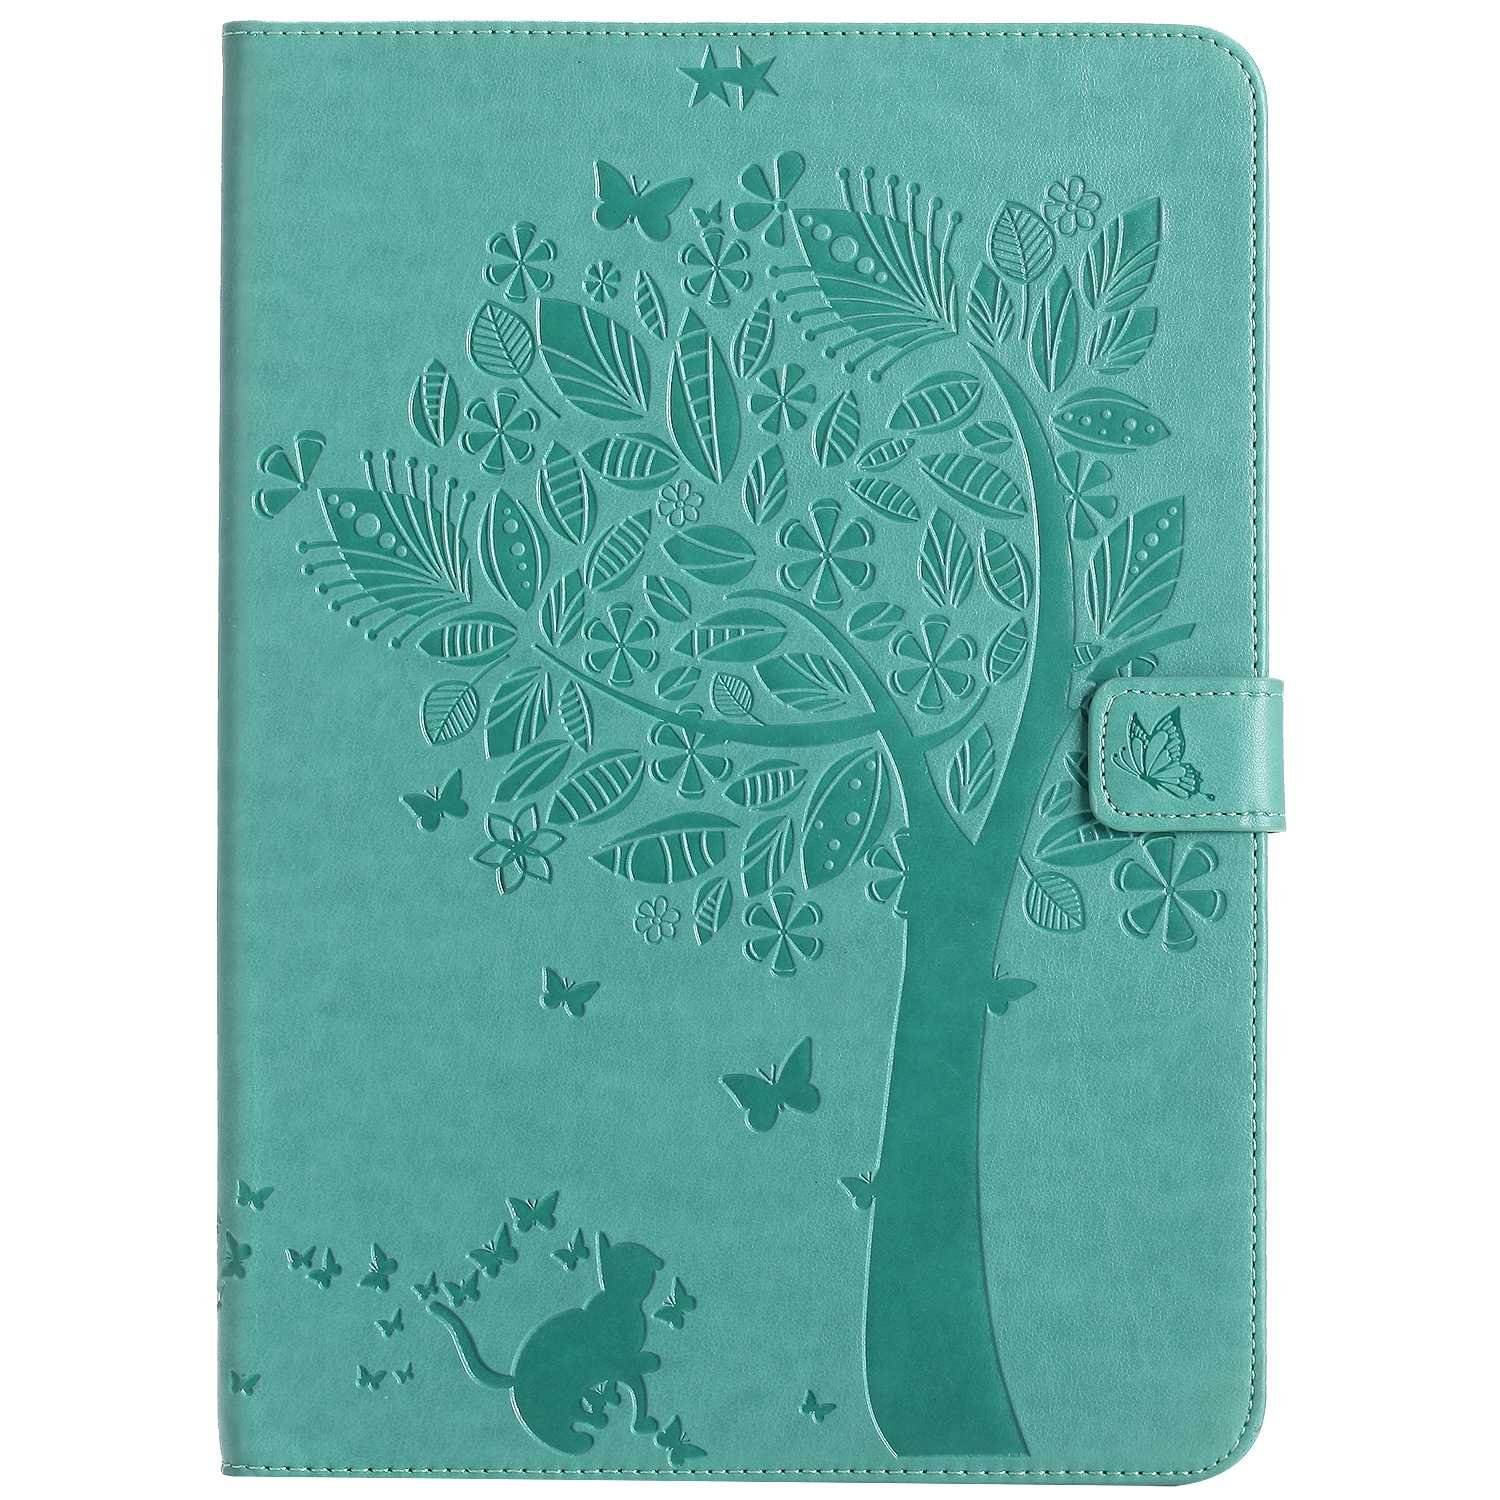 Bear Village iPad 2017 / iPad 2018 (9.7 Inch) Case, Leather Magnetic Case, Fullbody Protective Cover with Stand Function for Apple iPad 2017 / iPad 2018 (9.7 Inch), Green by Bear Village